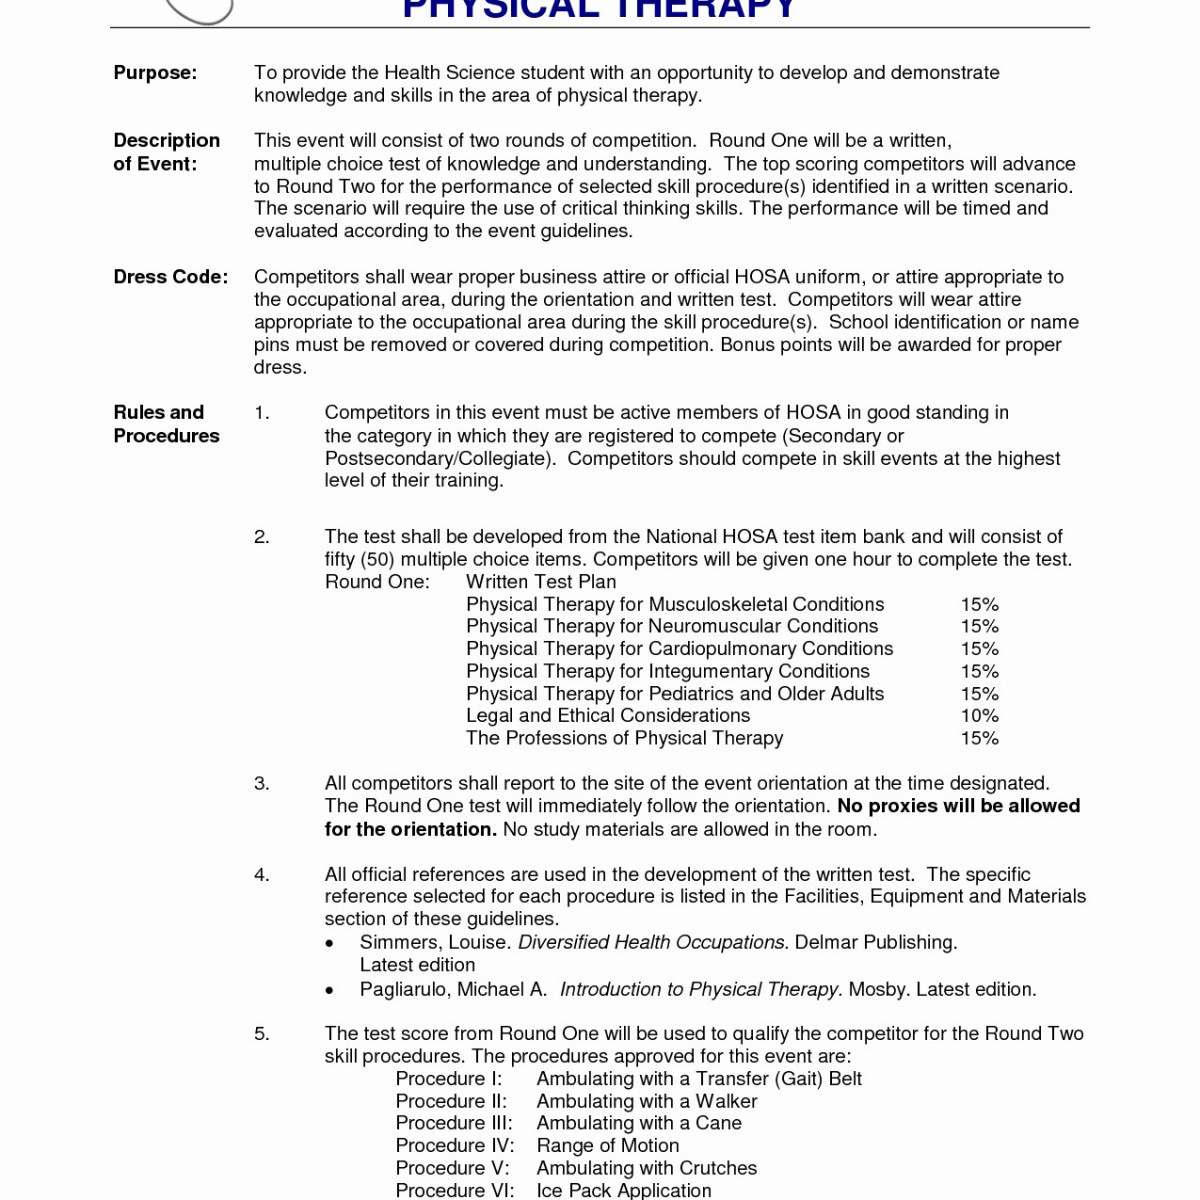 physical therapist resume template Collection-Resume Examples for Physical therapist at Resume Sample Ideas from Sample Physical Therapy Resume source cheapjordanretros 16-b